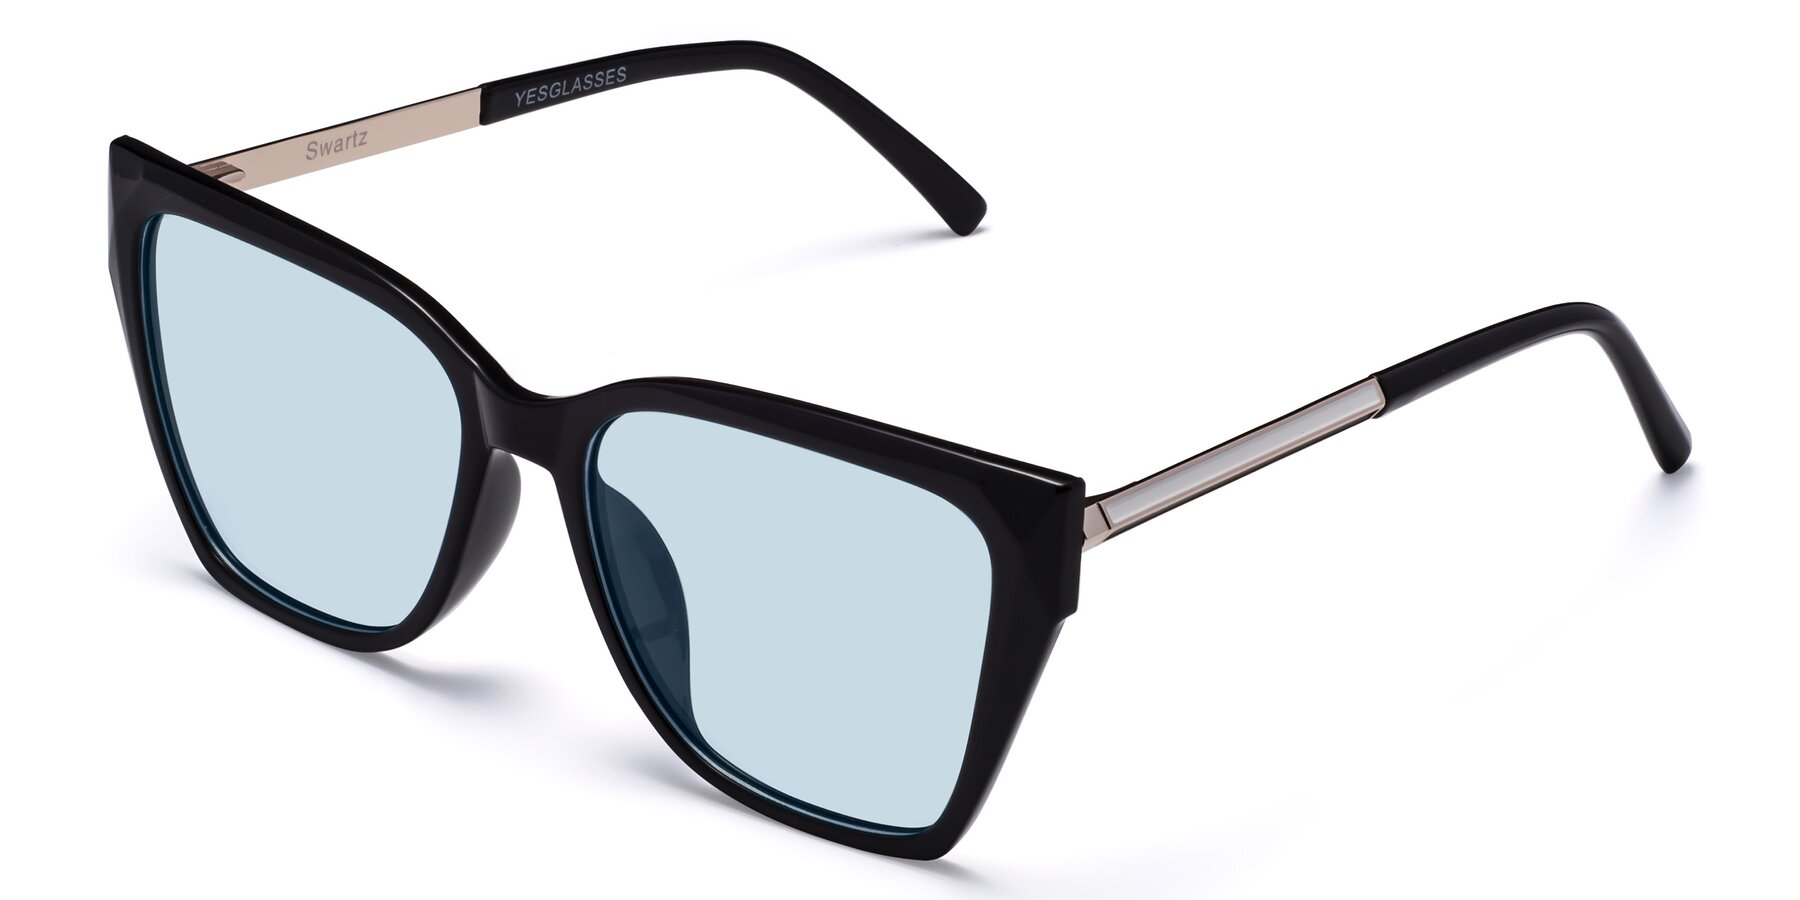 Angle of Swartz in Black with Light Blue Tinted Lenses